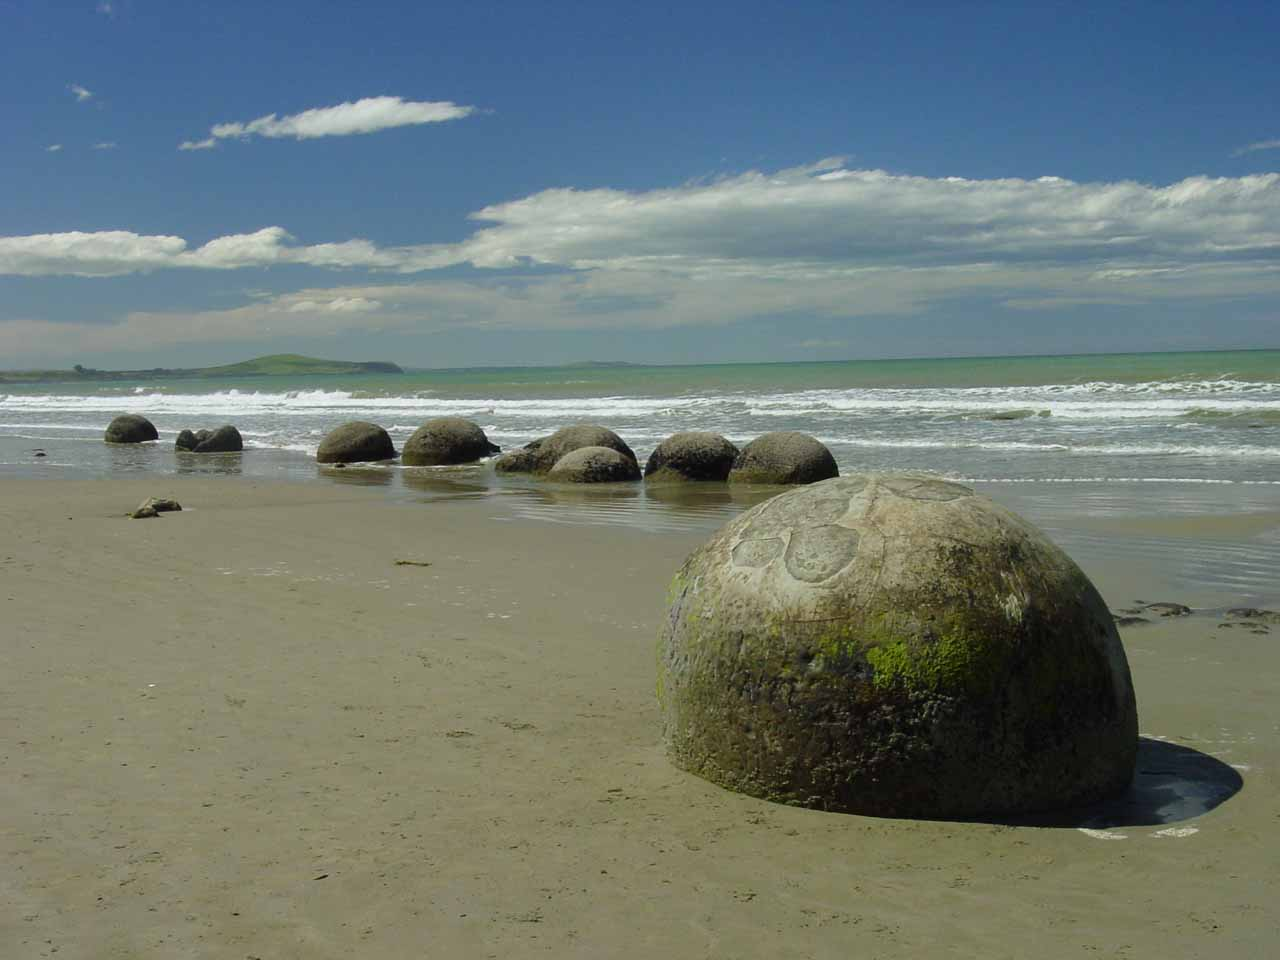 About 62km north-northeast of Dunedin was the beach containing the Moeraki Boulders, which was a really neat stop